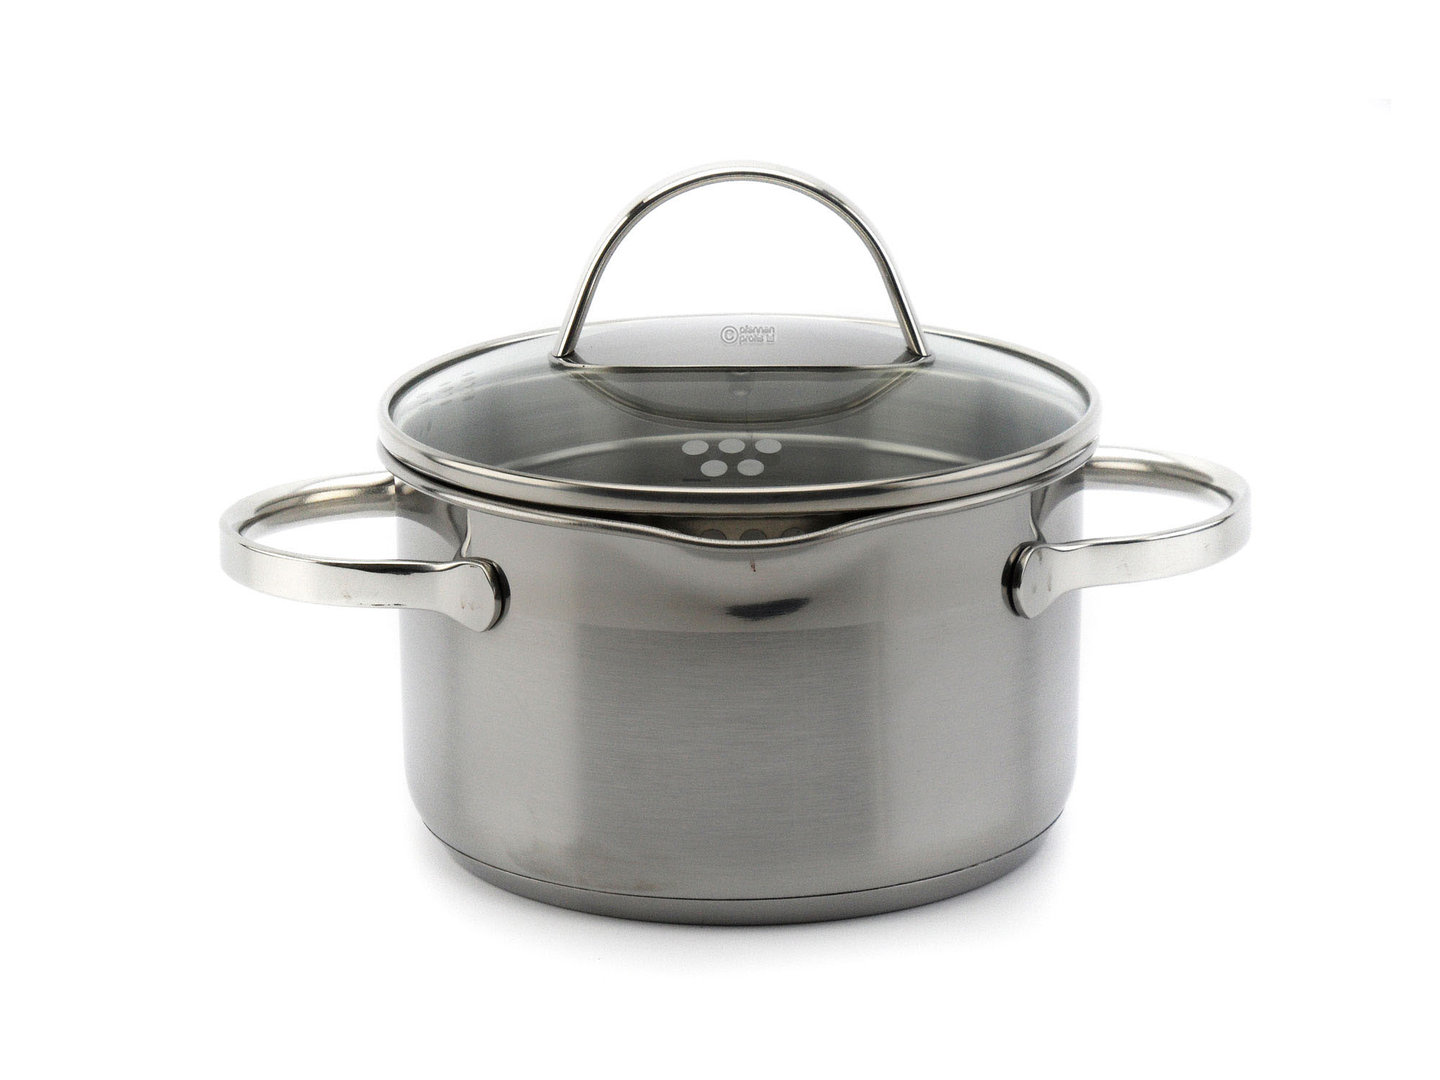 SSW easy straining casserole COMFORT 16 cm stainless steel induction